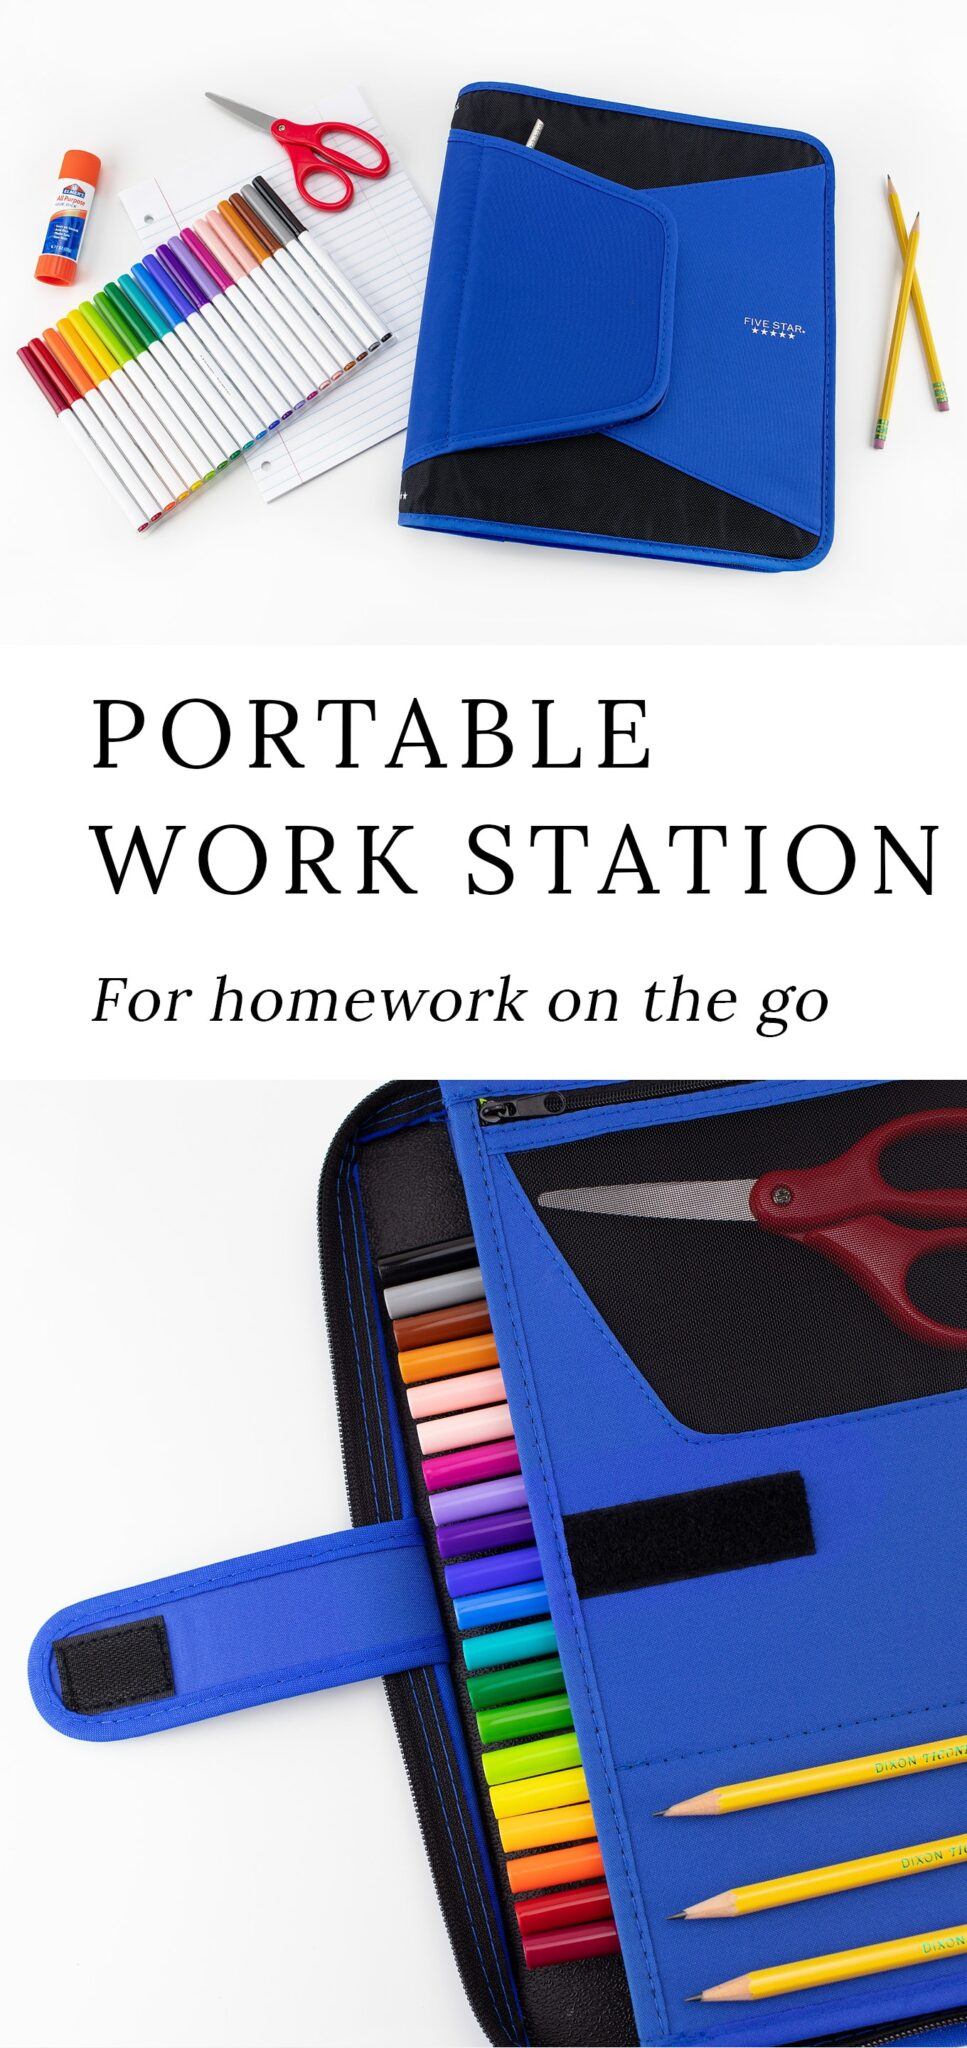 How to Make a Portable Work Station